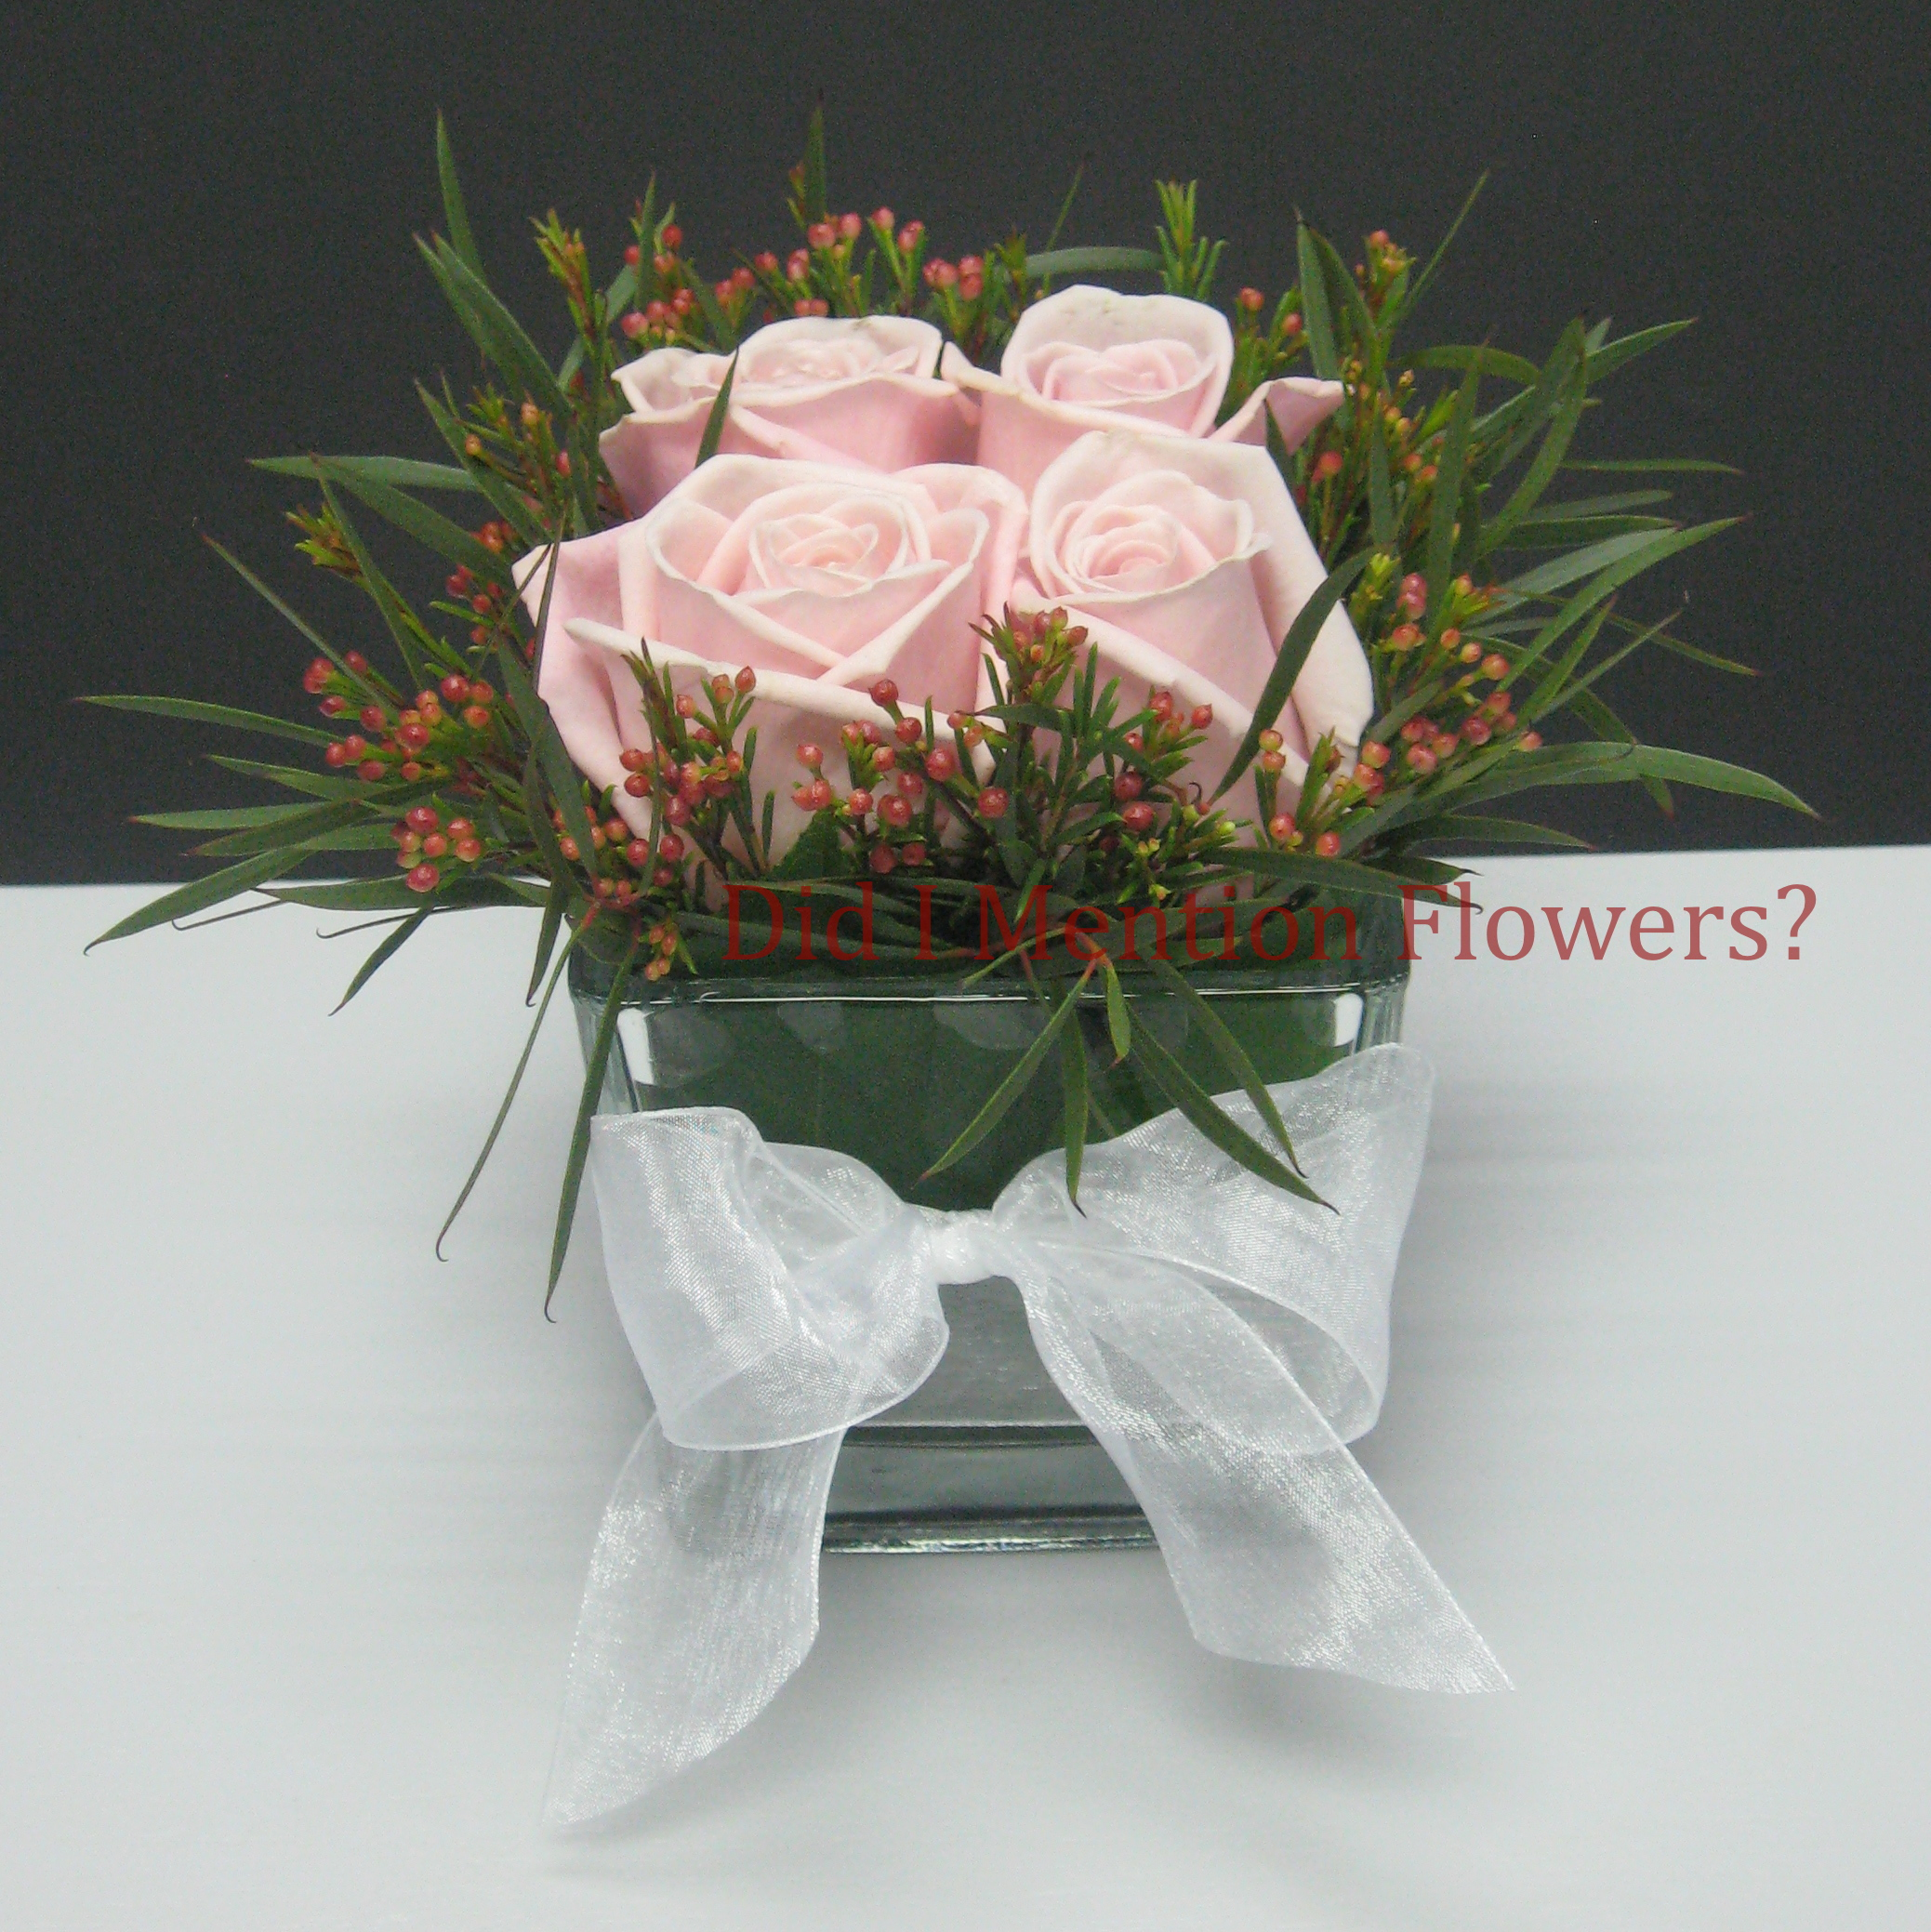 14 - Love Cubed Rose Vase Arrangement